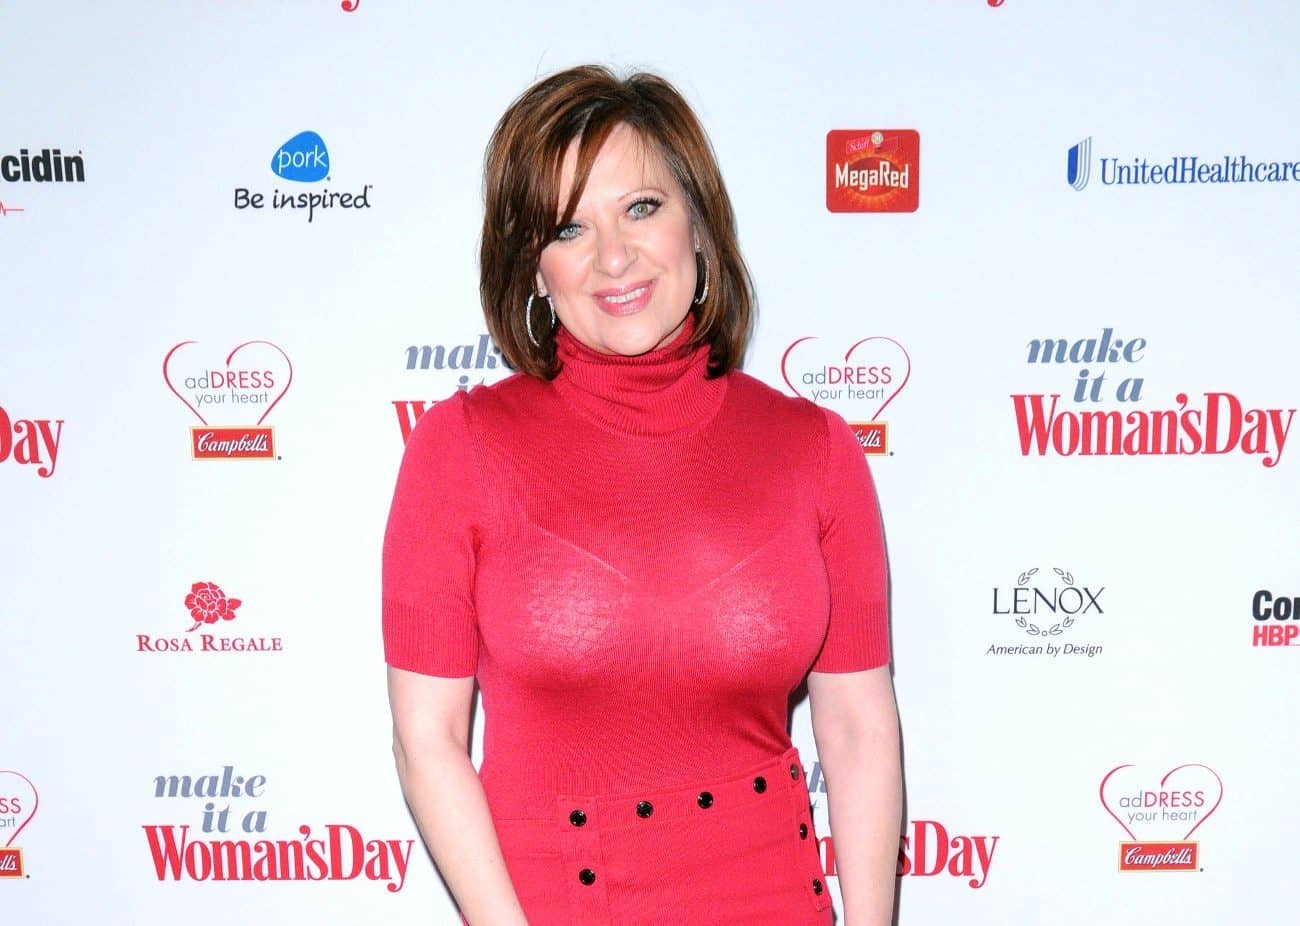 PHOTO: Caroline Manzo Shows Off Her New Look With Grey Hair as Current and Former RHONJ Cast Members React